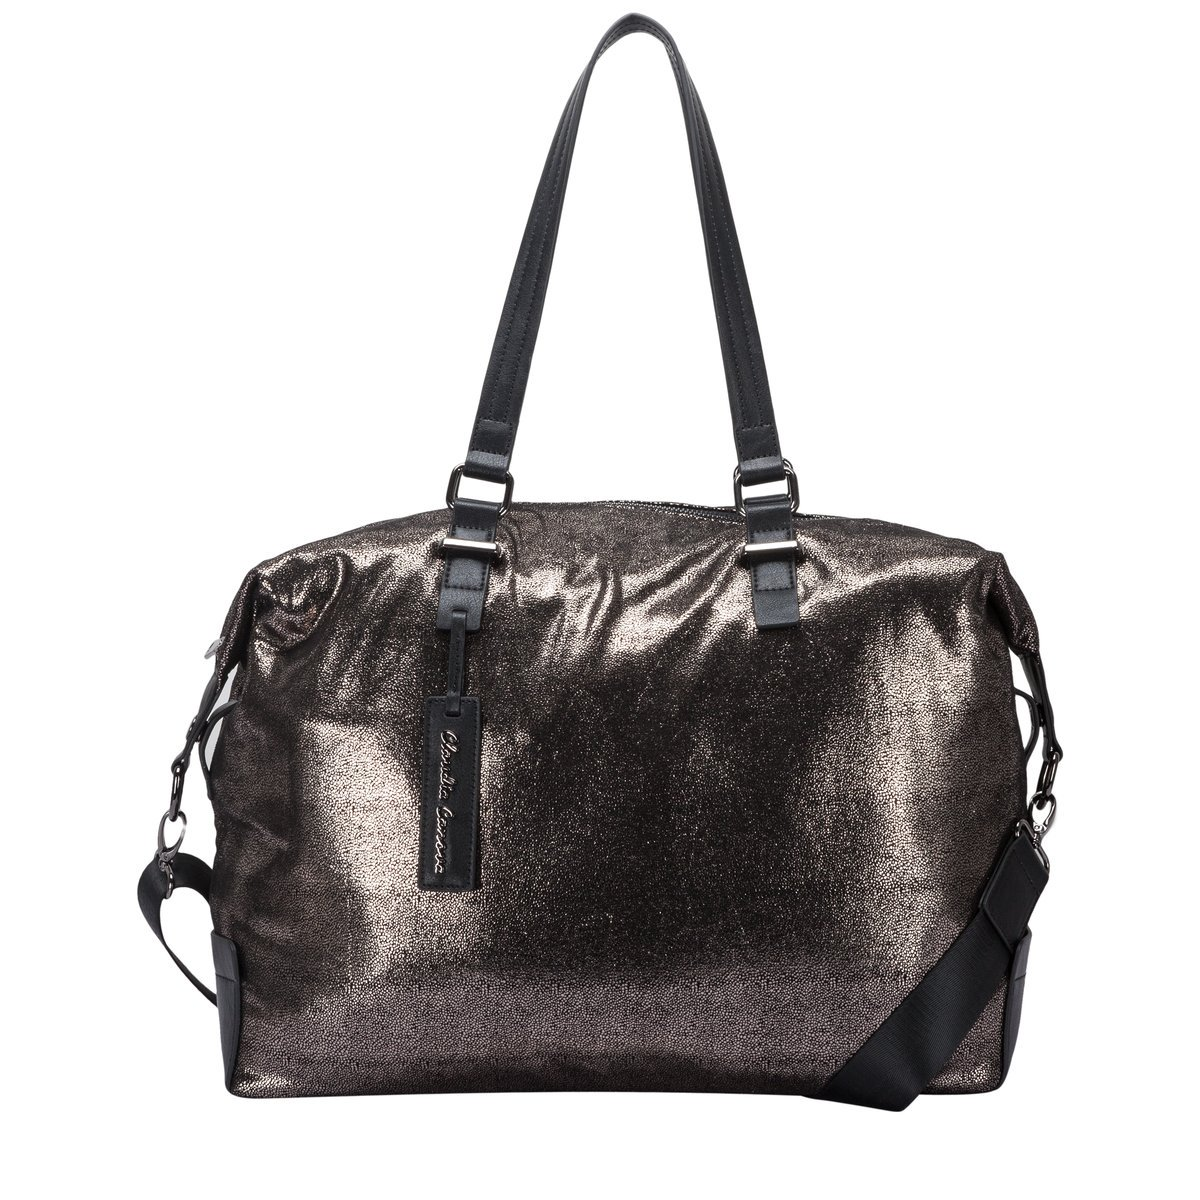 #RT &amp; #Follow for a chance to #WIN the Pewter #Holdall   T&amp;Cs  https:// goo.gl/FS8uN1  &nbsp;     #Competition #Giveaway<br>http://pic.twitter.com/iD4nD9IVXC